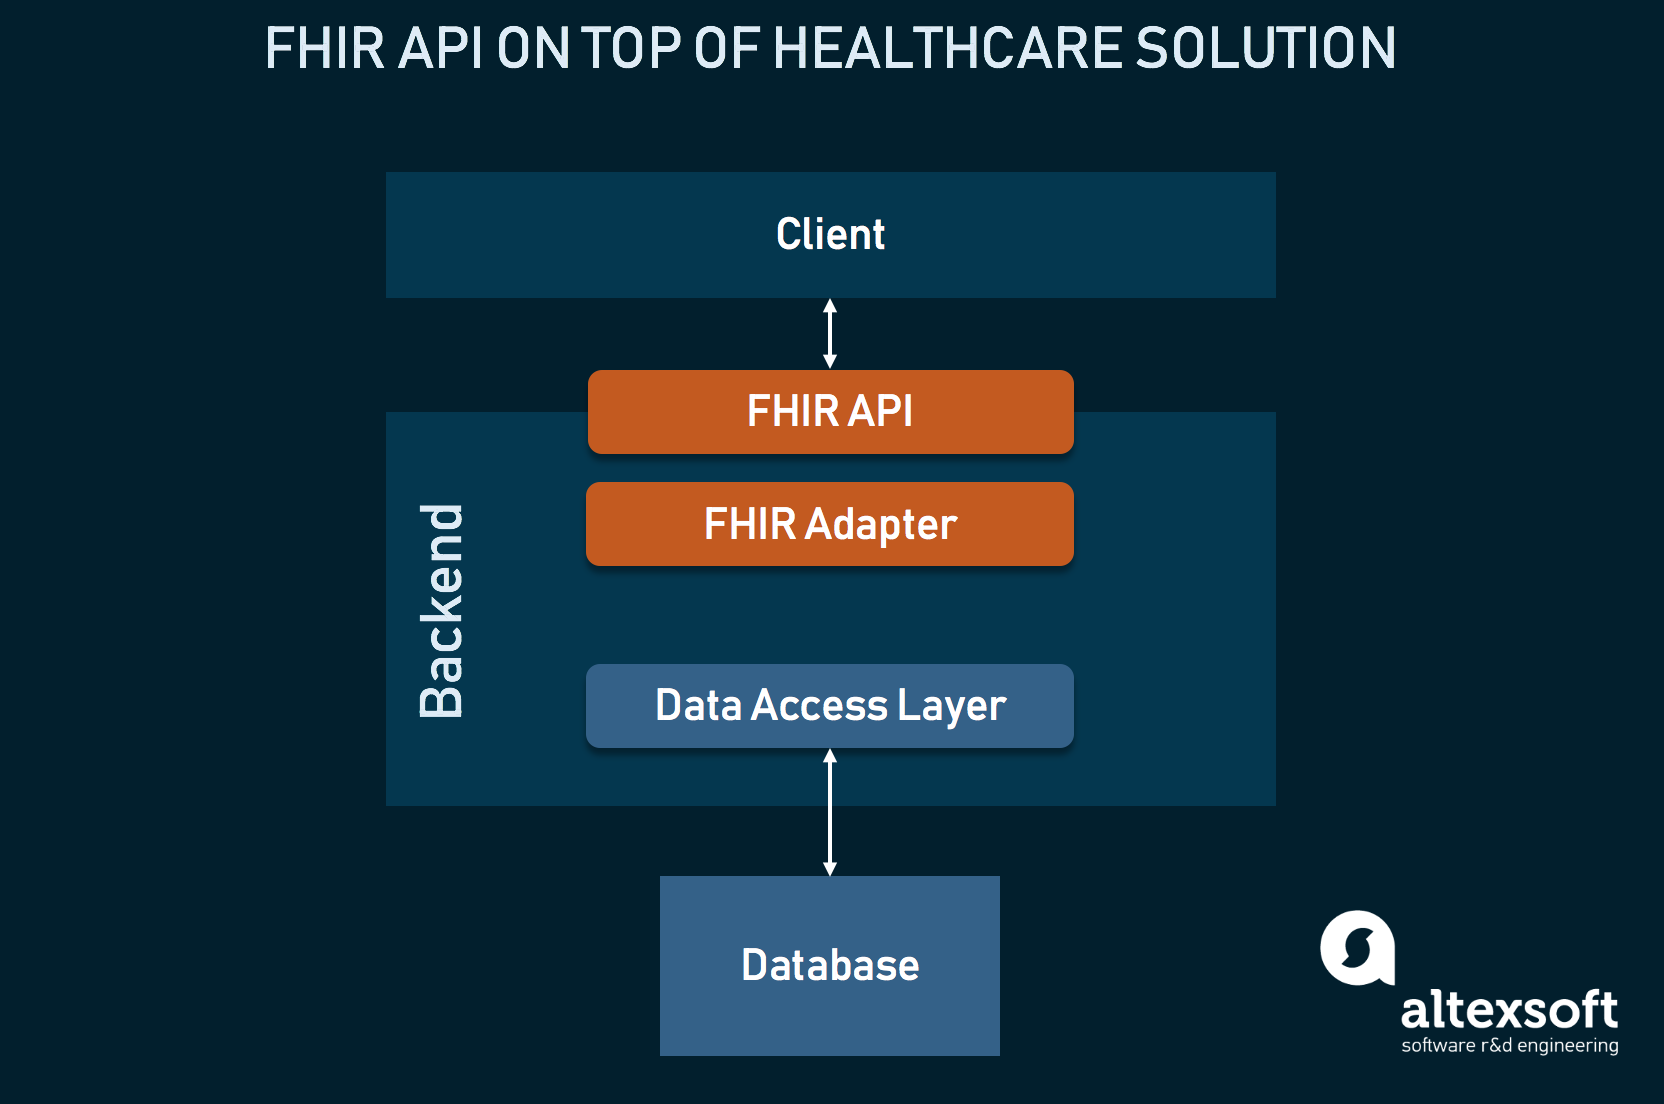 The architecture of implementing FHIR on top of your EHR